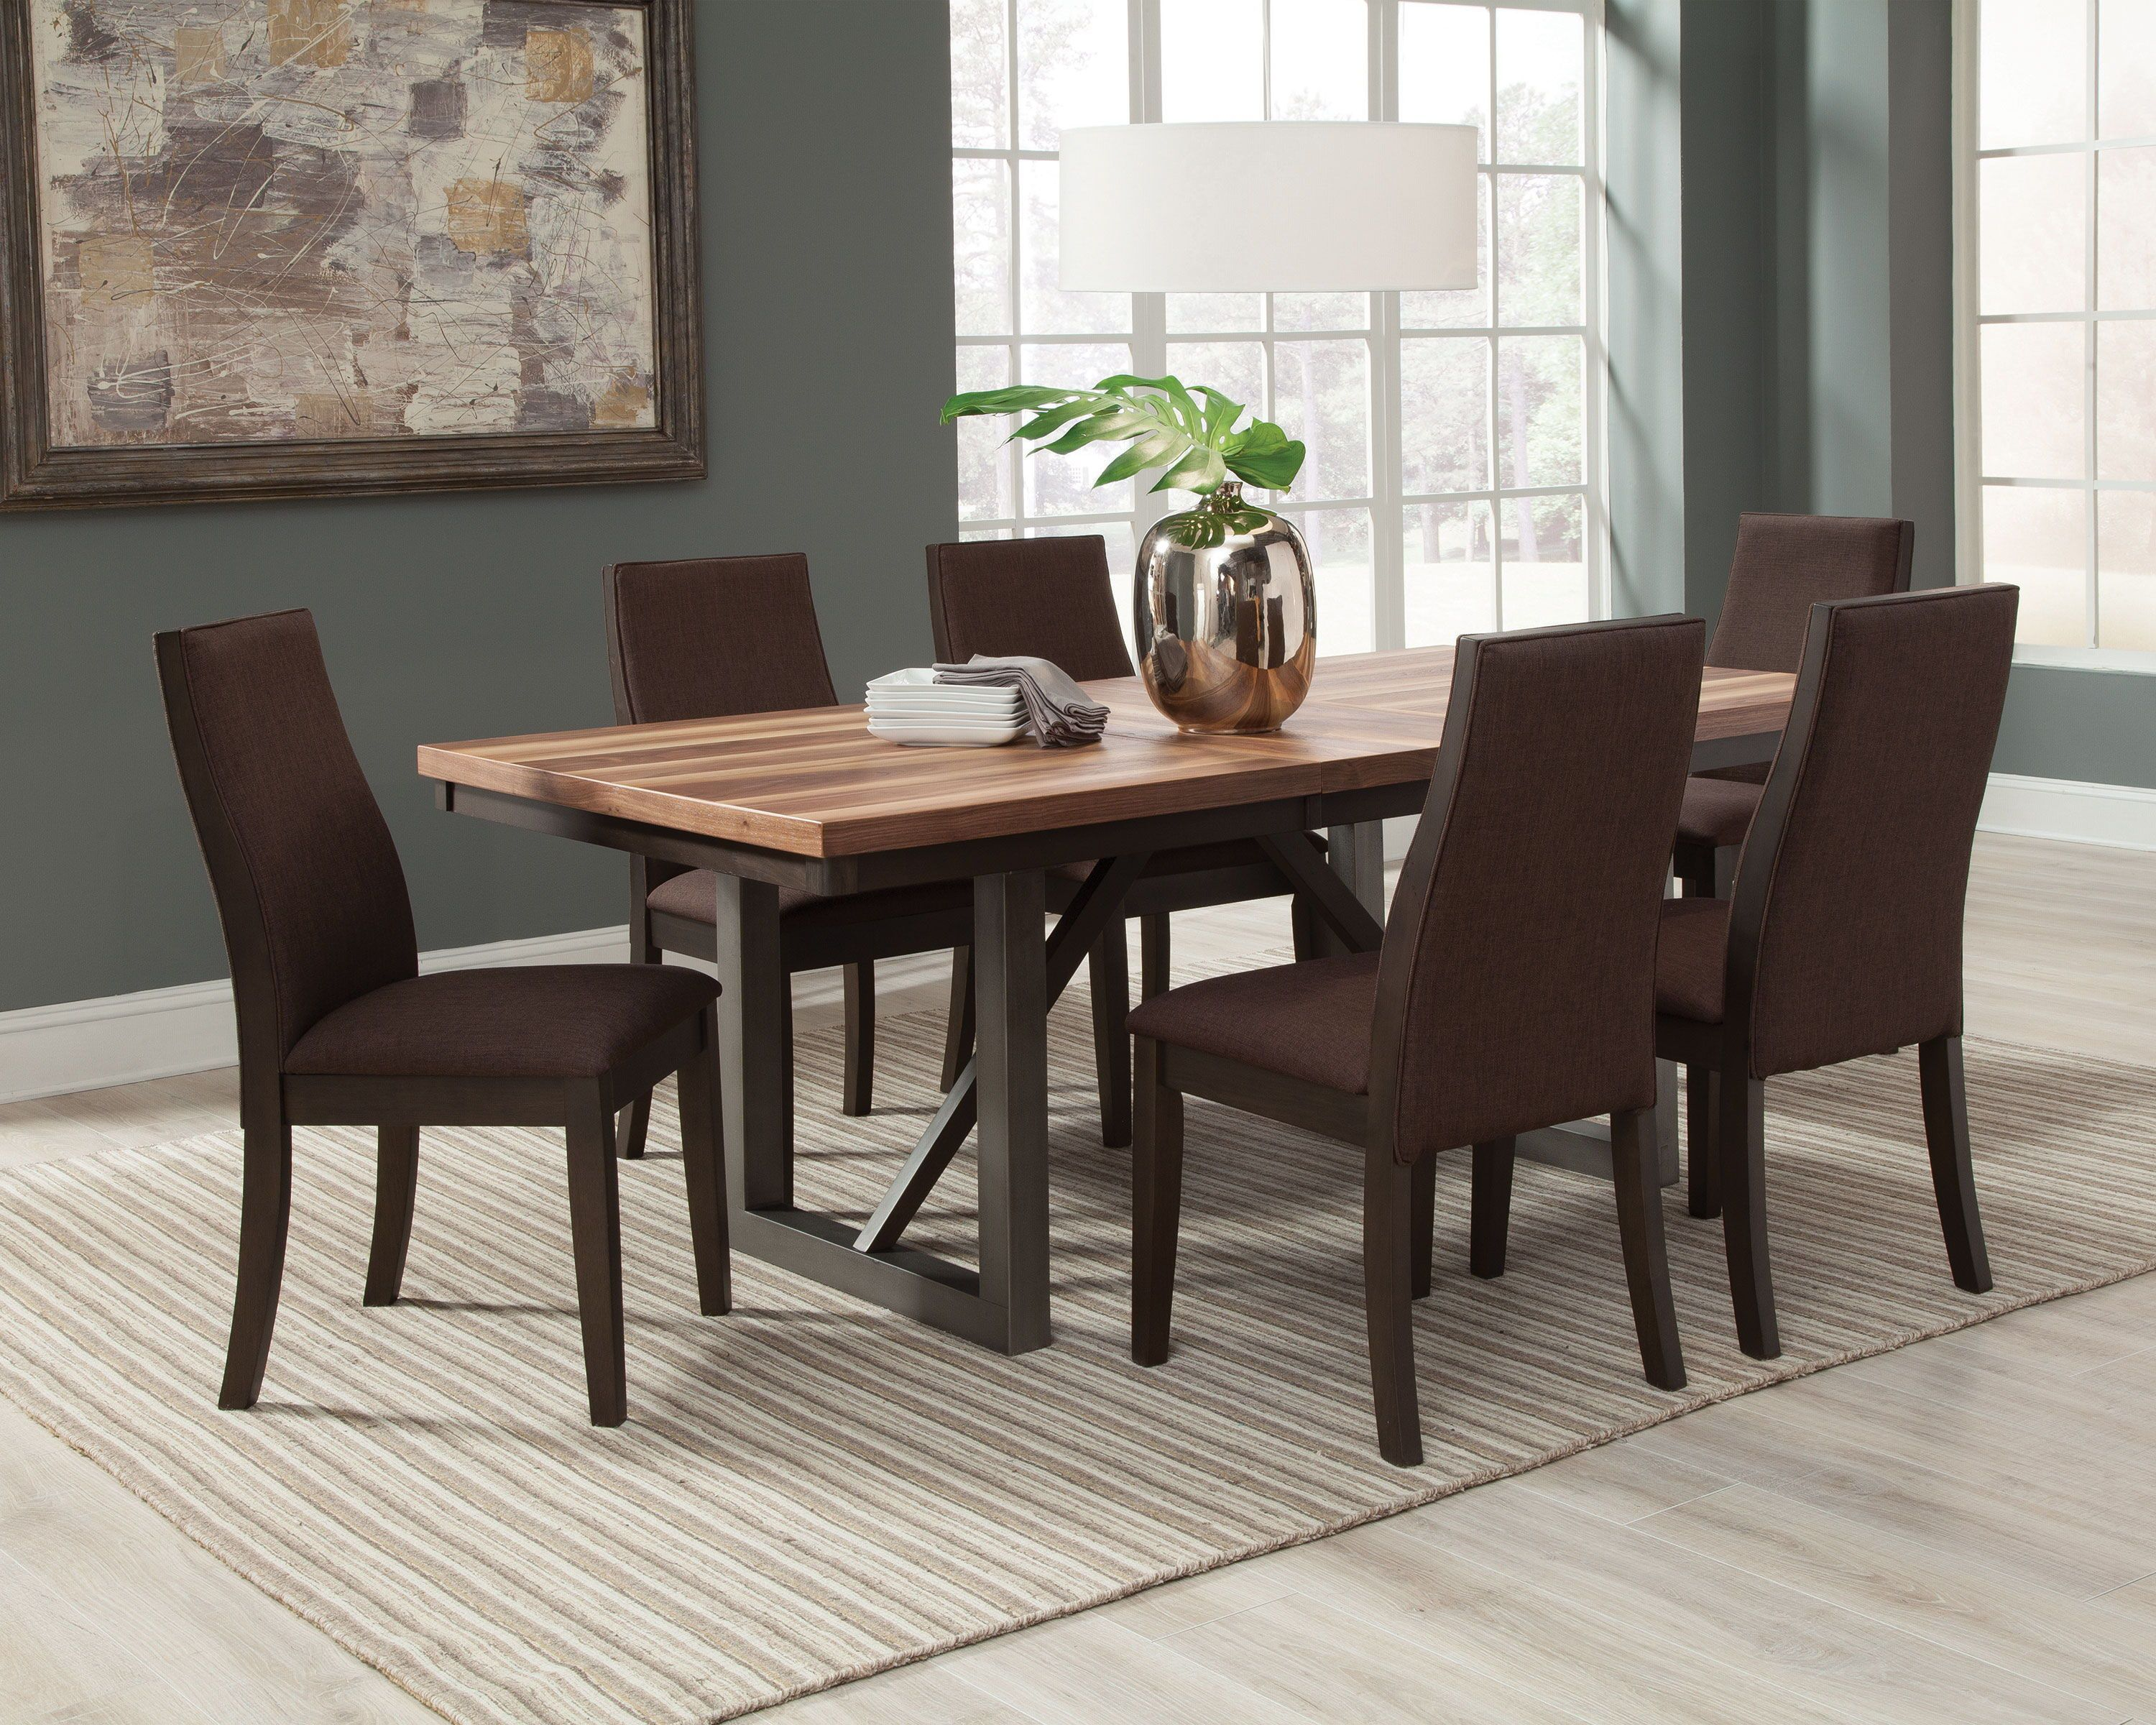 44+ Cheap dining table sets under 100 Various Types